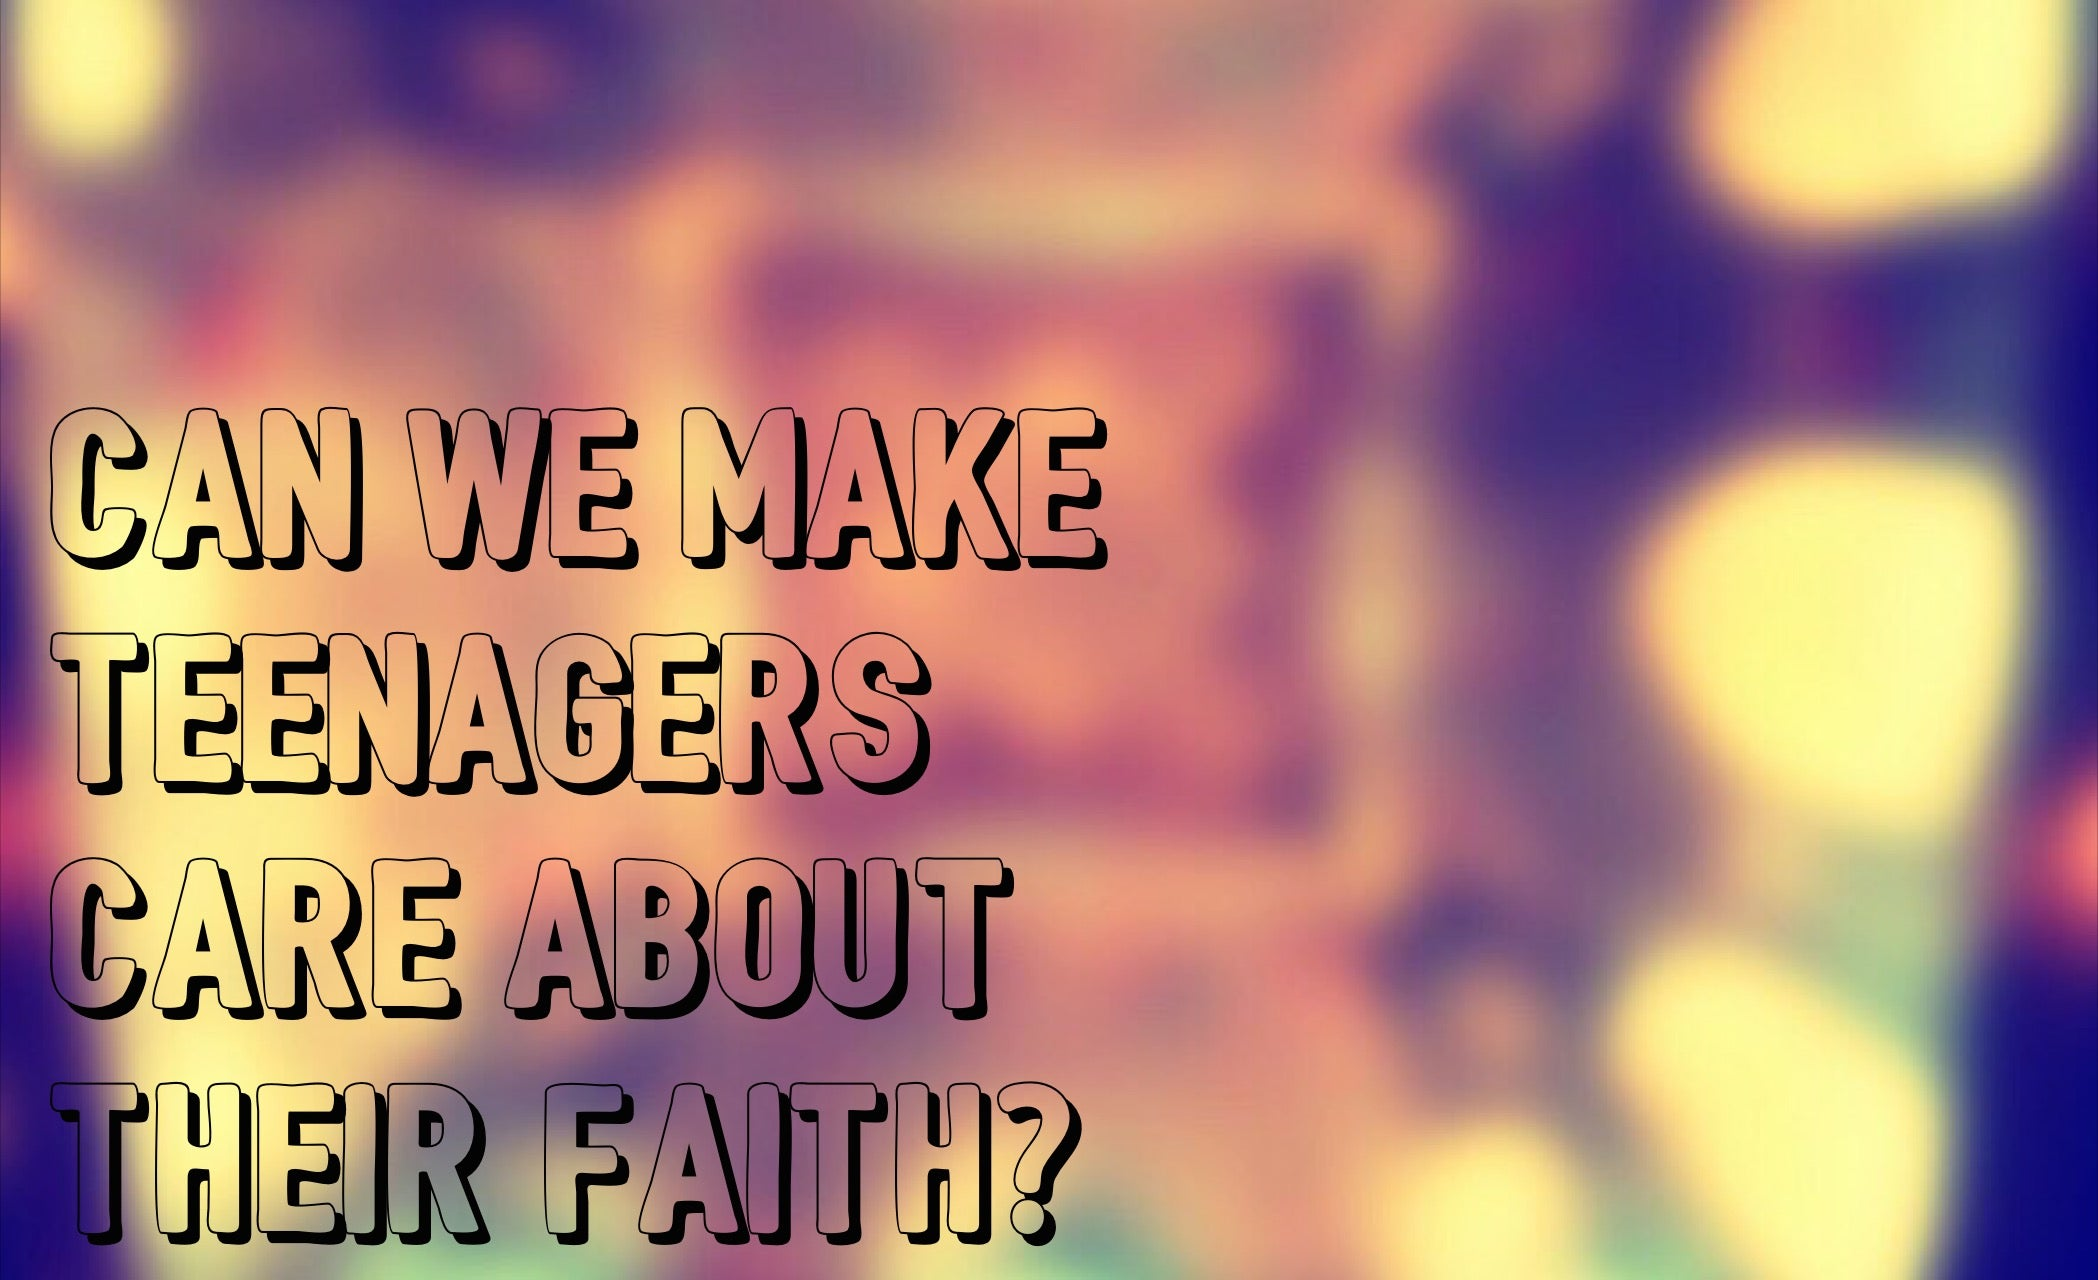 How Can We Make Teenagers Care About Their Faith?